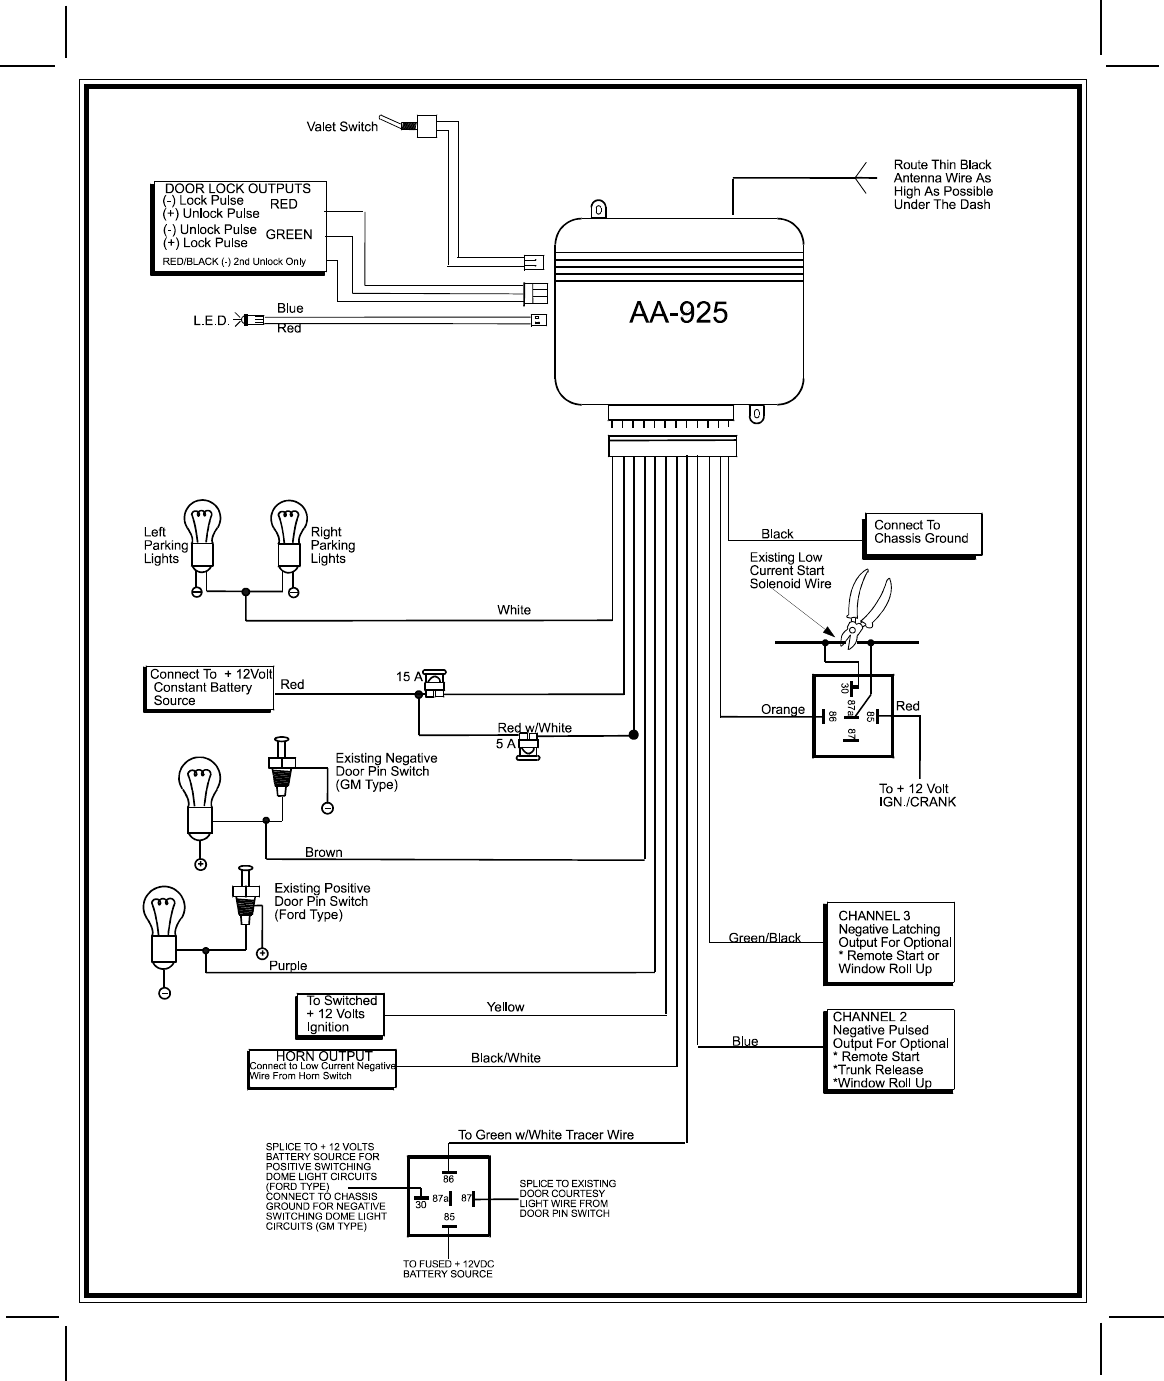 728e5939 5a52 46a4 ba14 2e72baef2843 bg8 citroen alarm wiring diagram wiring diagram shrutiradio repeller car alarm wiring diagram at alyssarenee.co